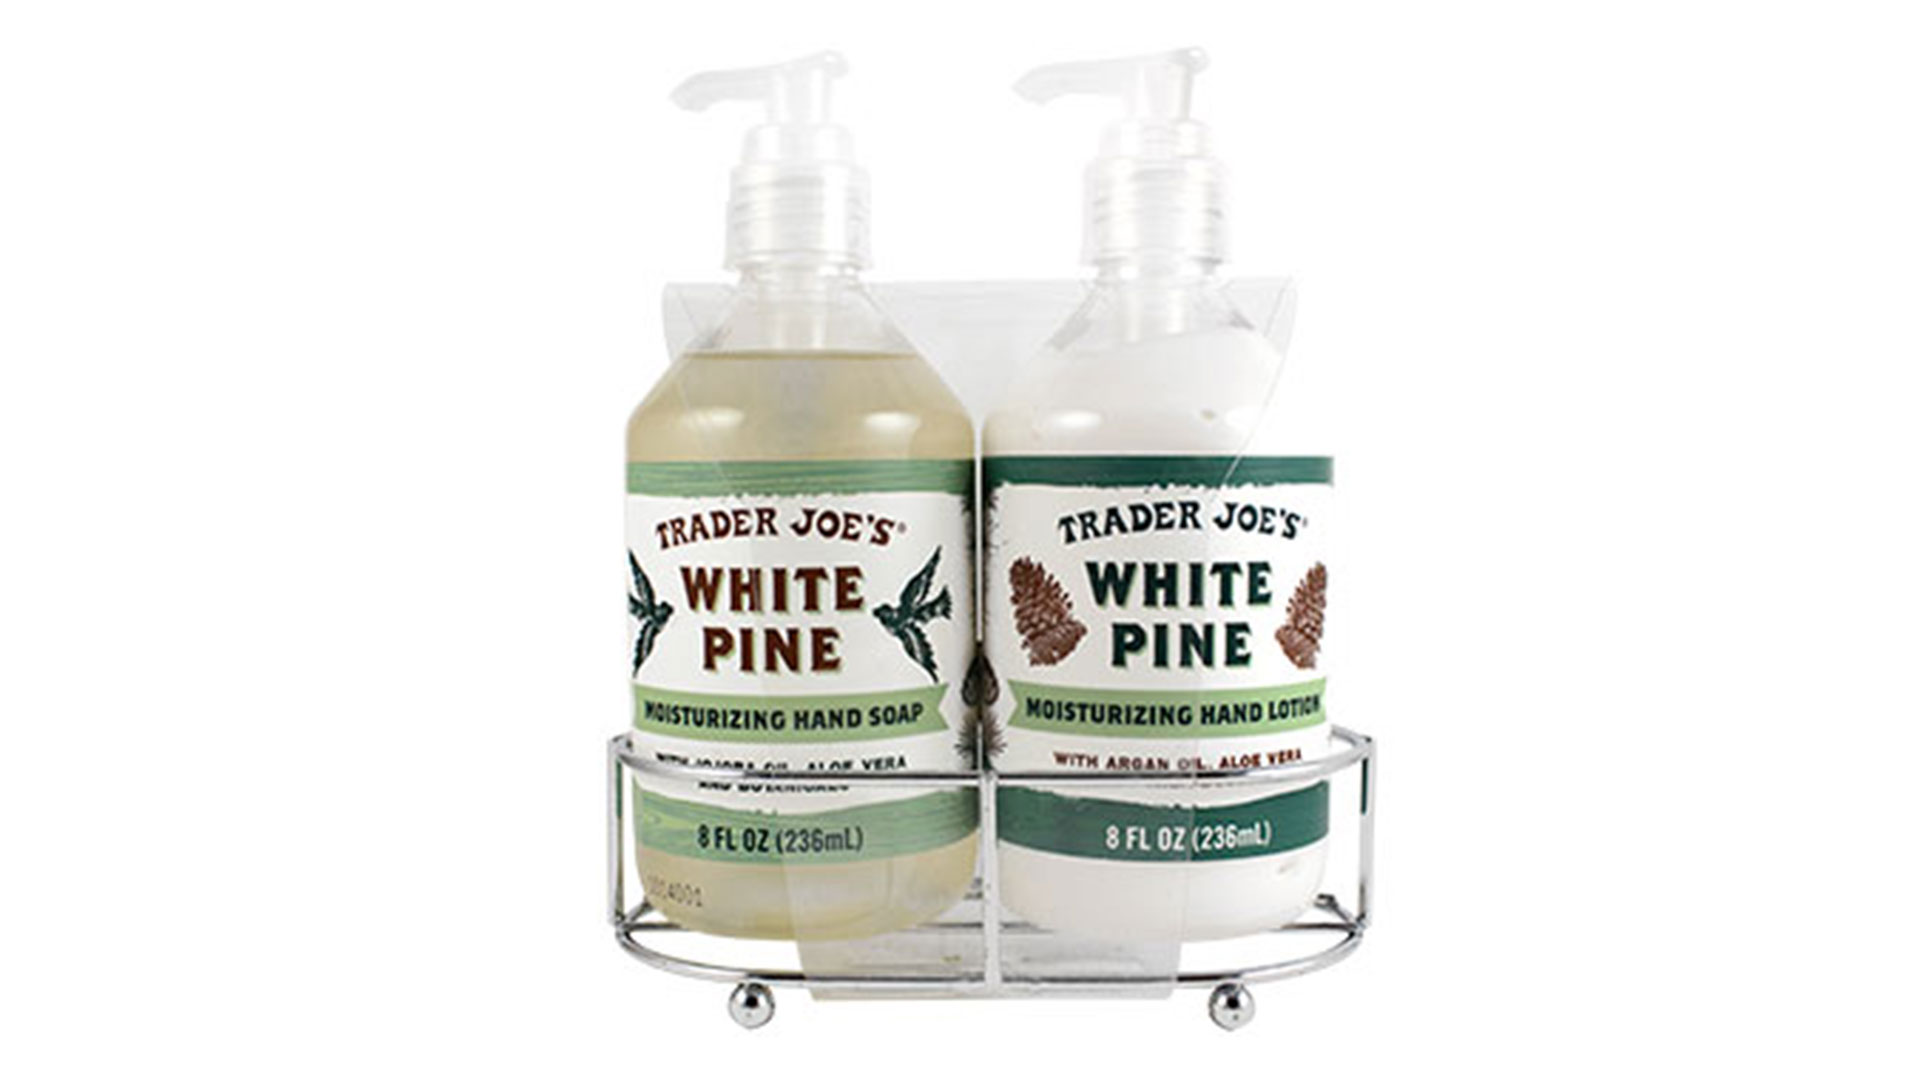 White Pine Hand Lotion and Soap